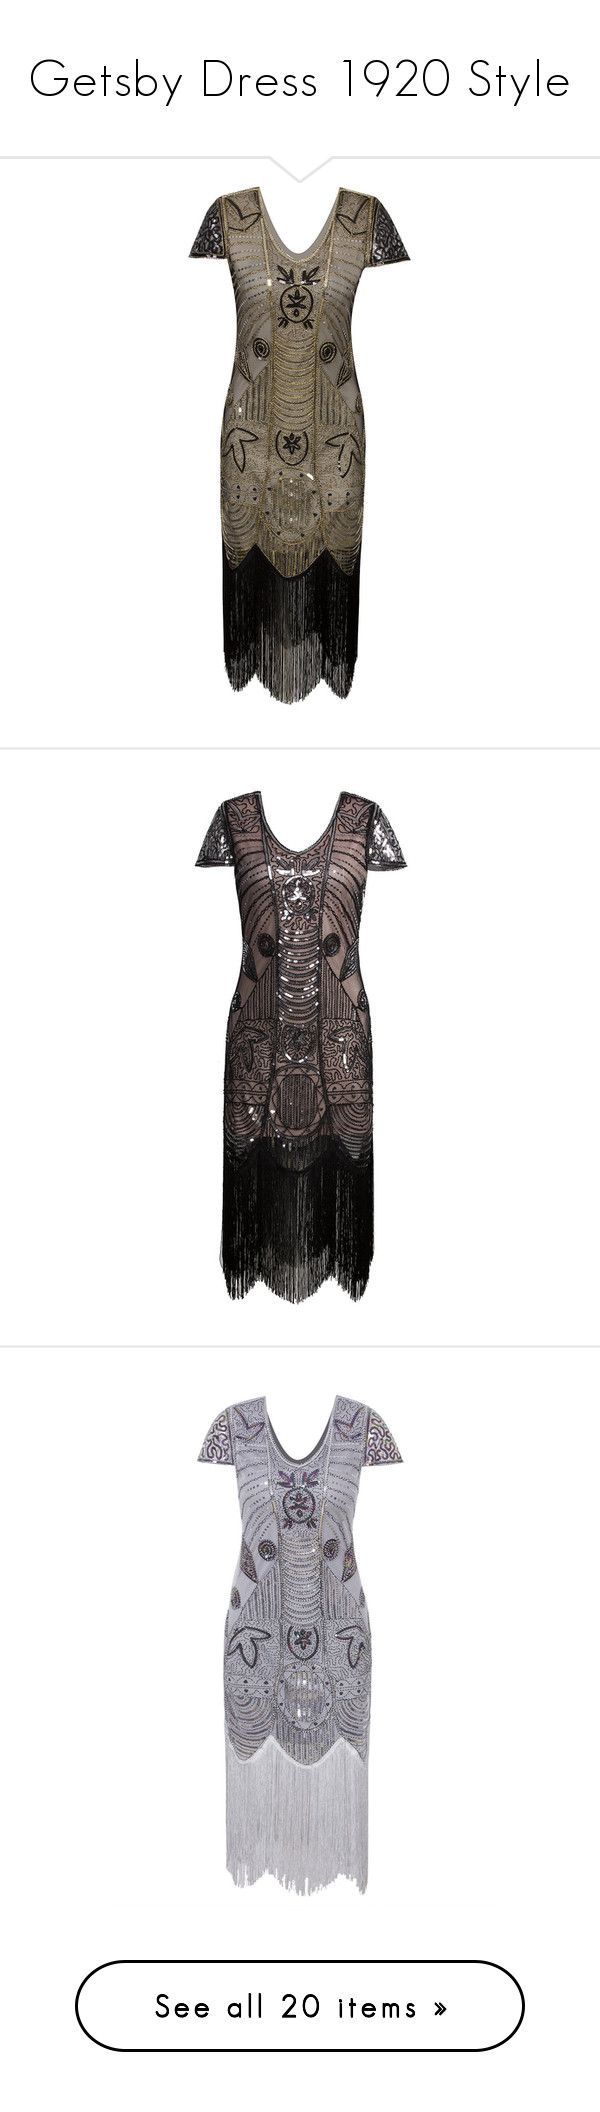 """""""Getsby Dress 1920 Style"""" by tatyanareva ❤ liked on Polyvore featuring dresses, long flapper dress, 1920s dresses, sequin cocktail dresses, 1920s flapper dress, sequin flapper dresses, fringe cocktail dresses, sequin fringe dress, 20s flapper dress and sequined dress"""